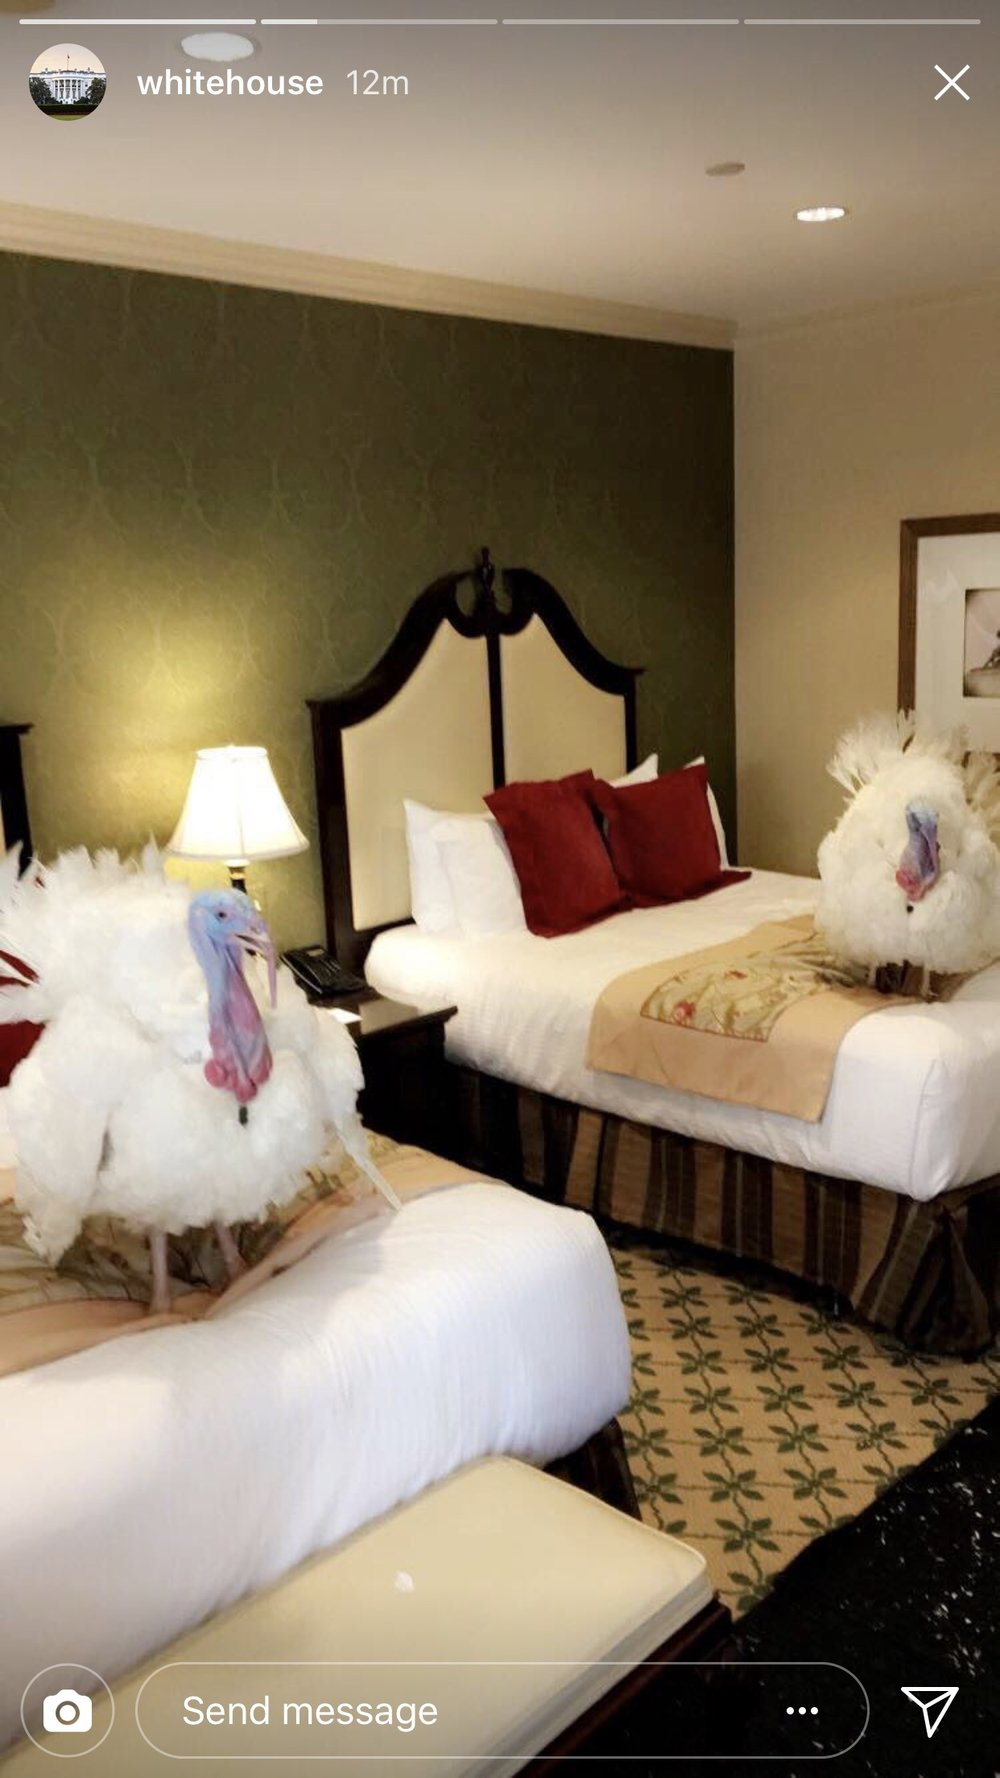 Luxury accommodations for the turkeys at the Willard Intercontinental Hotel. The National Turkey Federation paid the bill for the fancy lodgings as they have in the past.